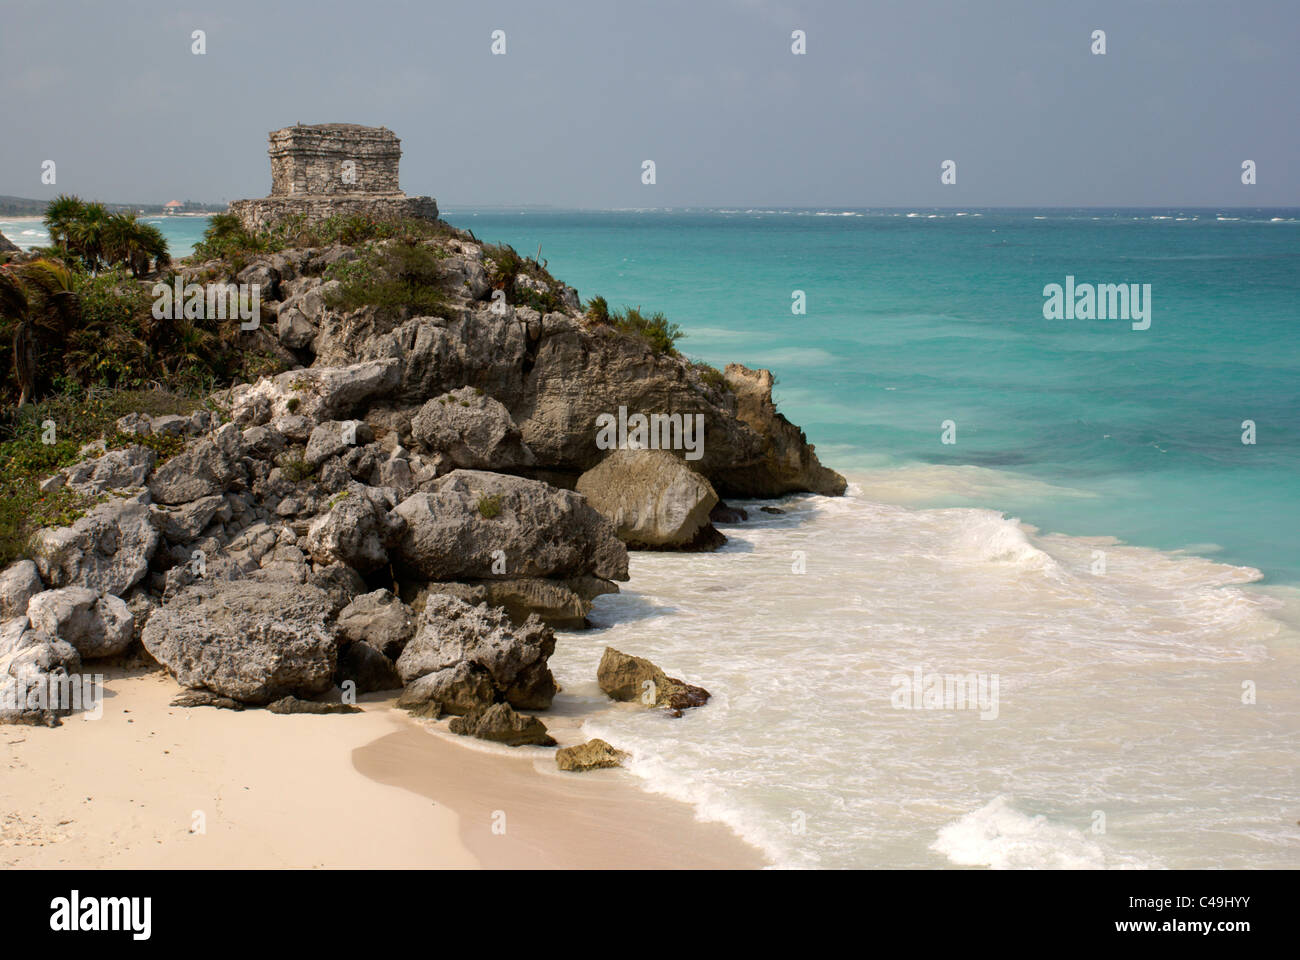 Temple of the Wind God and beach at the Mayan ruins of Tulum on the Riviera Maya, Quintana Roo, Mexico - Stock Image